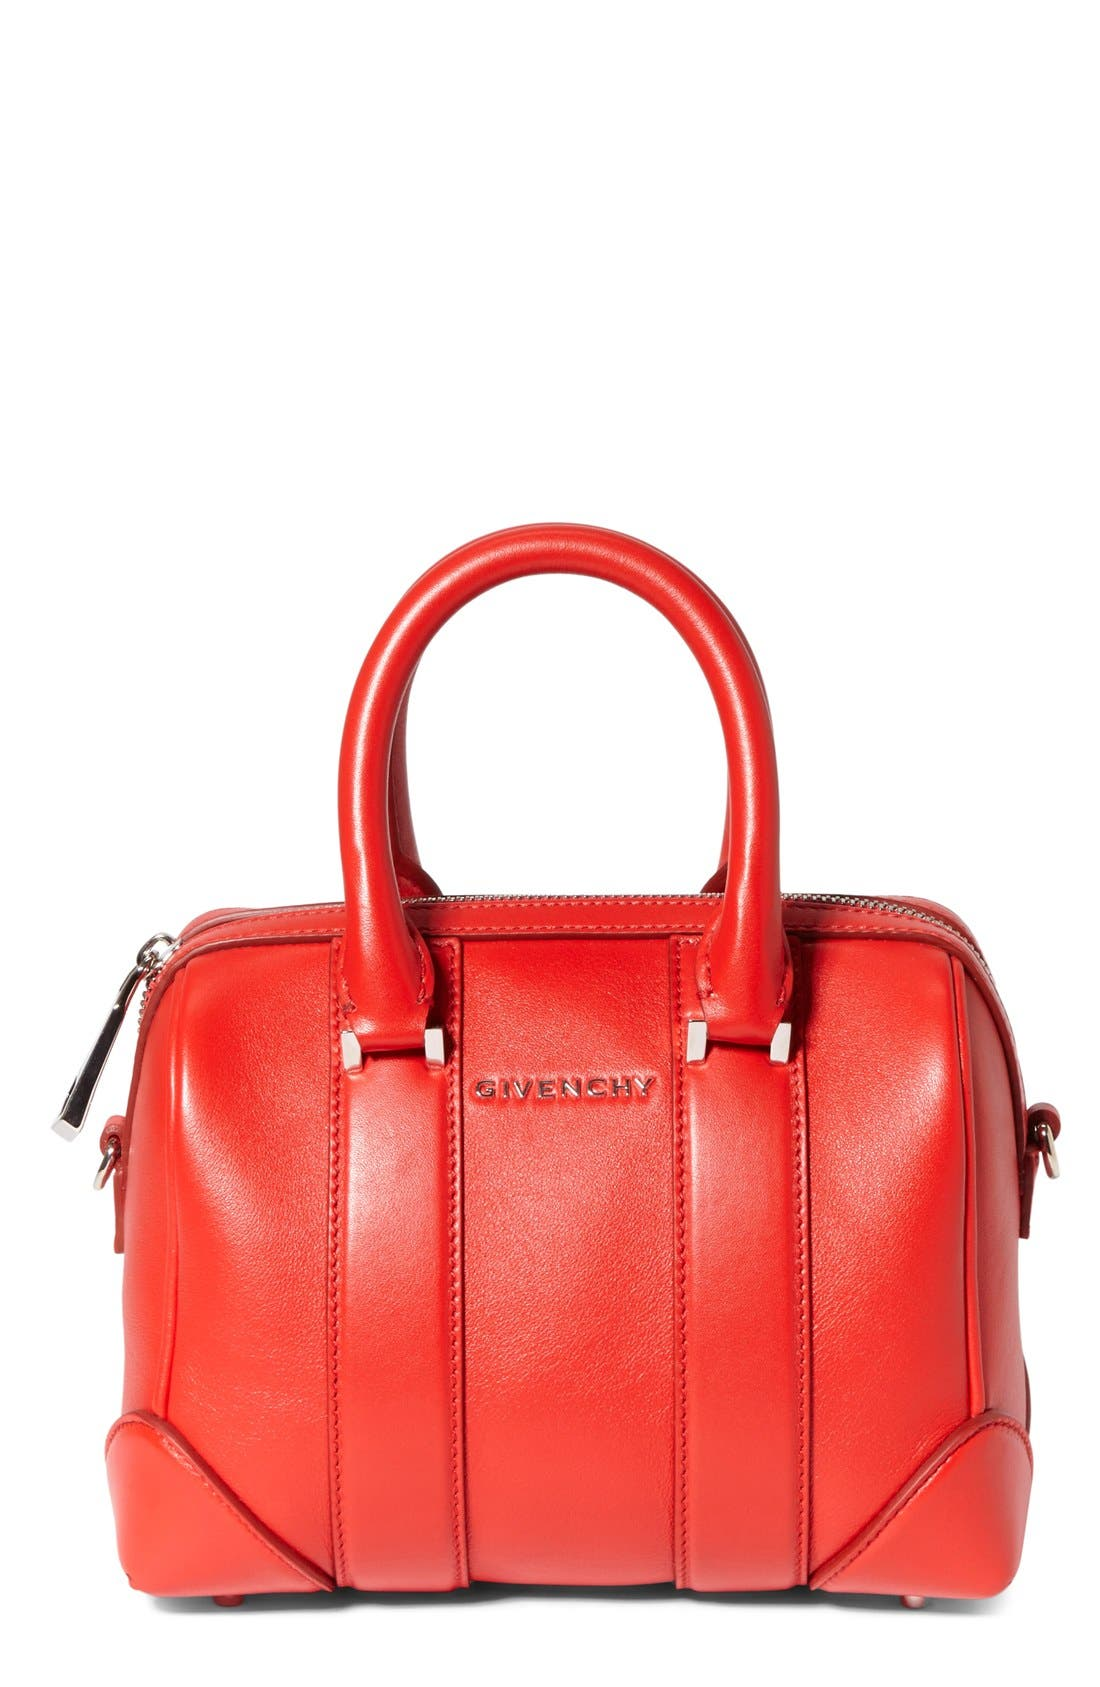 Alternate Image 1 Selected - Givenchy 'Micro Lucrezia Sandy' Leather Satchel